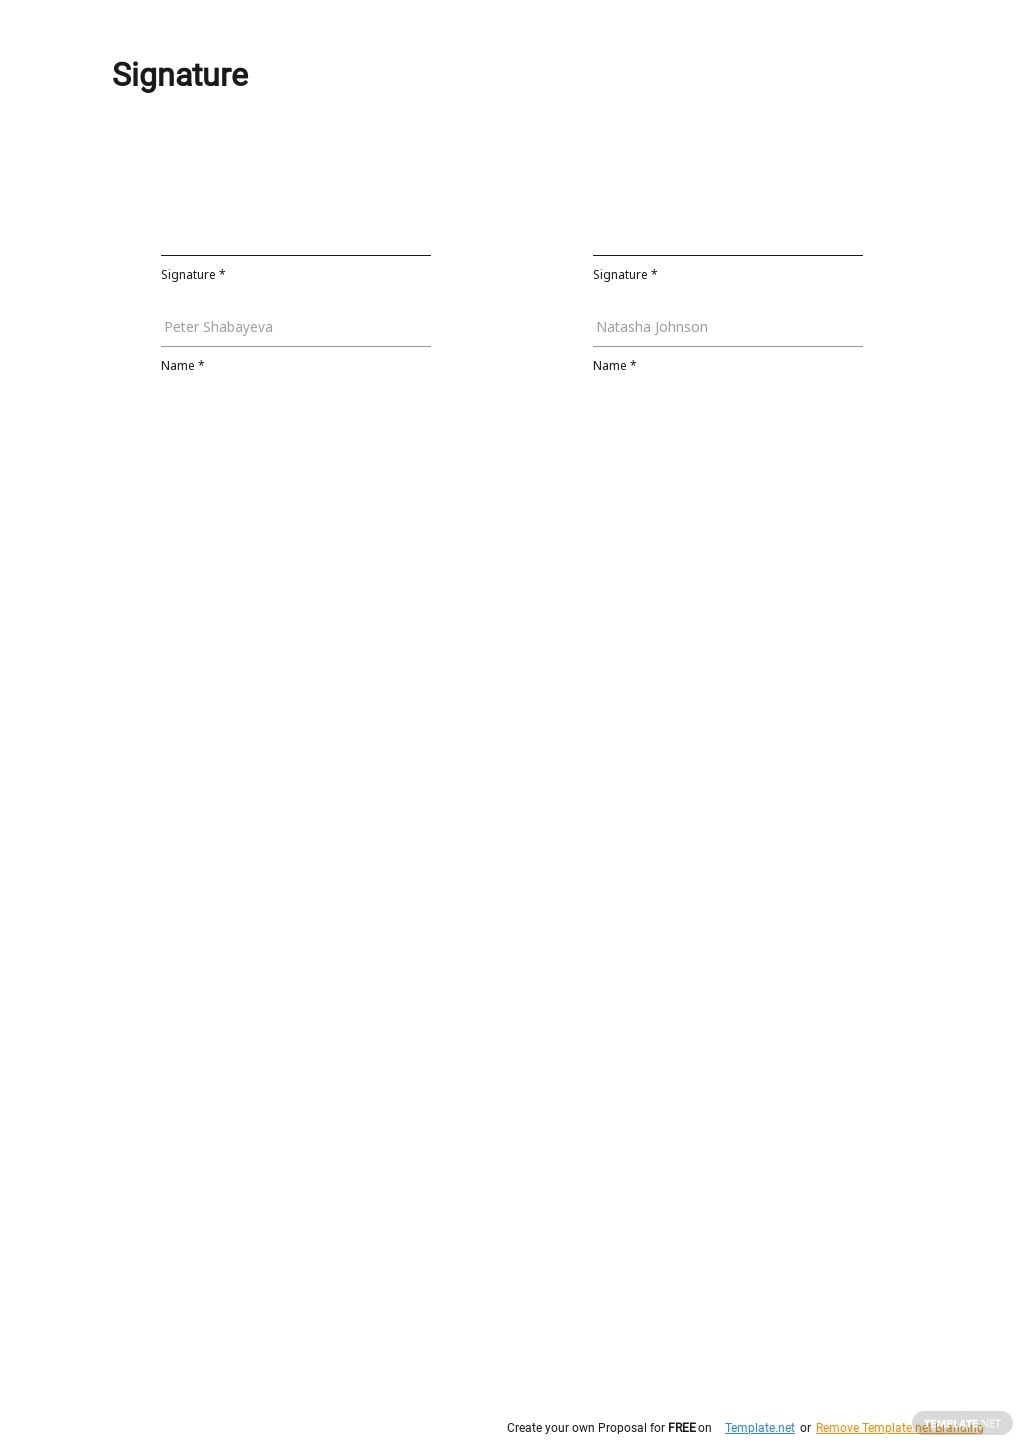 Buy Sell Agreement Template 2.jpe